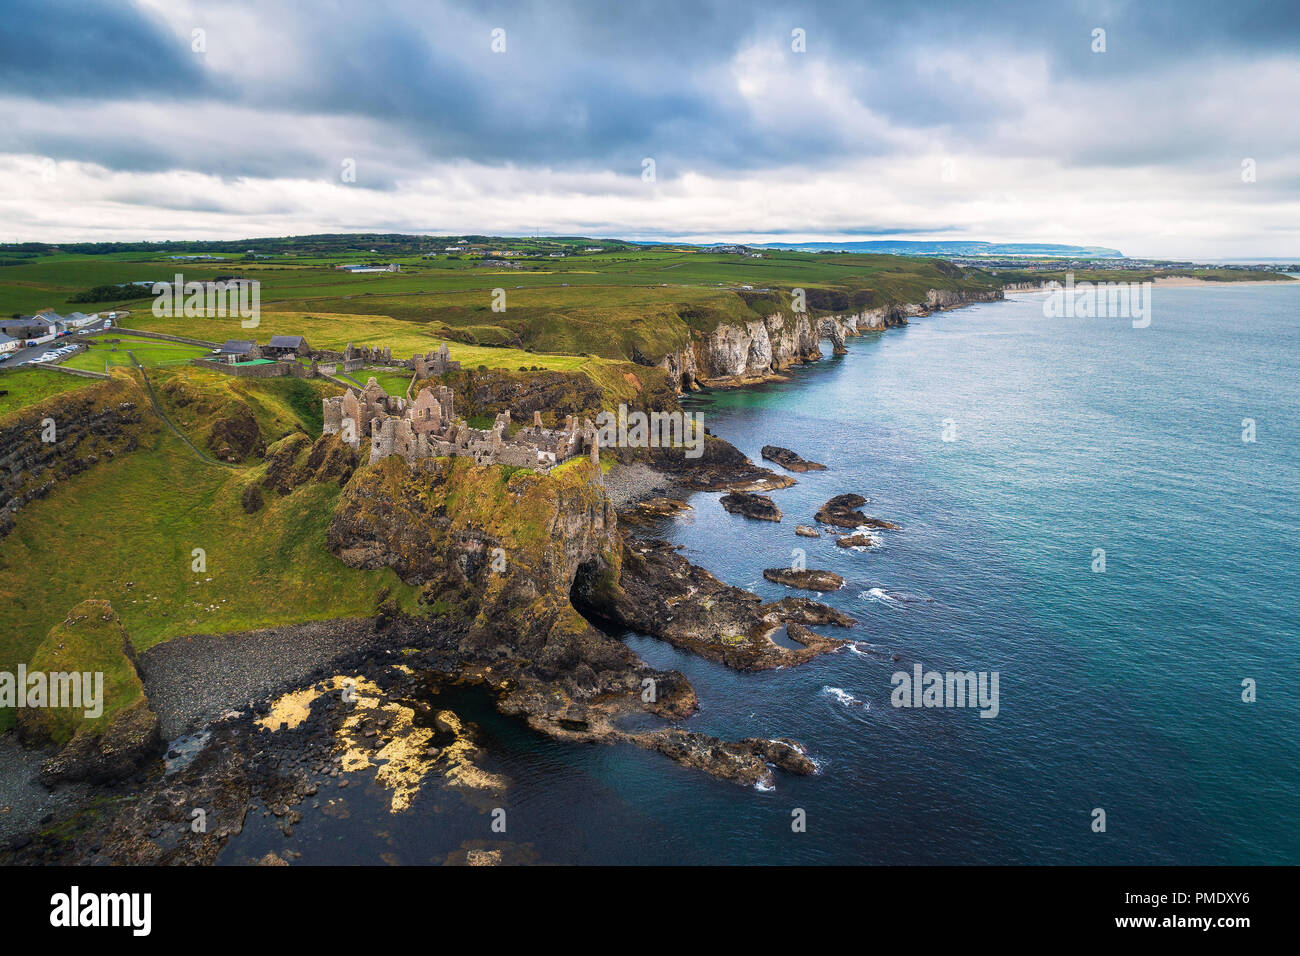 Aerial view of the medieval Dunluce Castle ruins and surrounding cliffs in Ireland - Stock Image